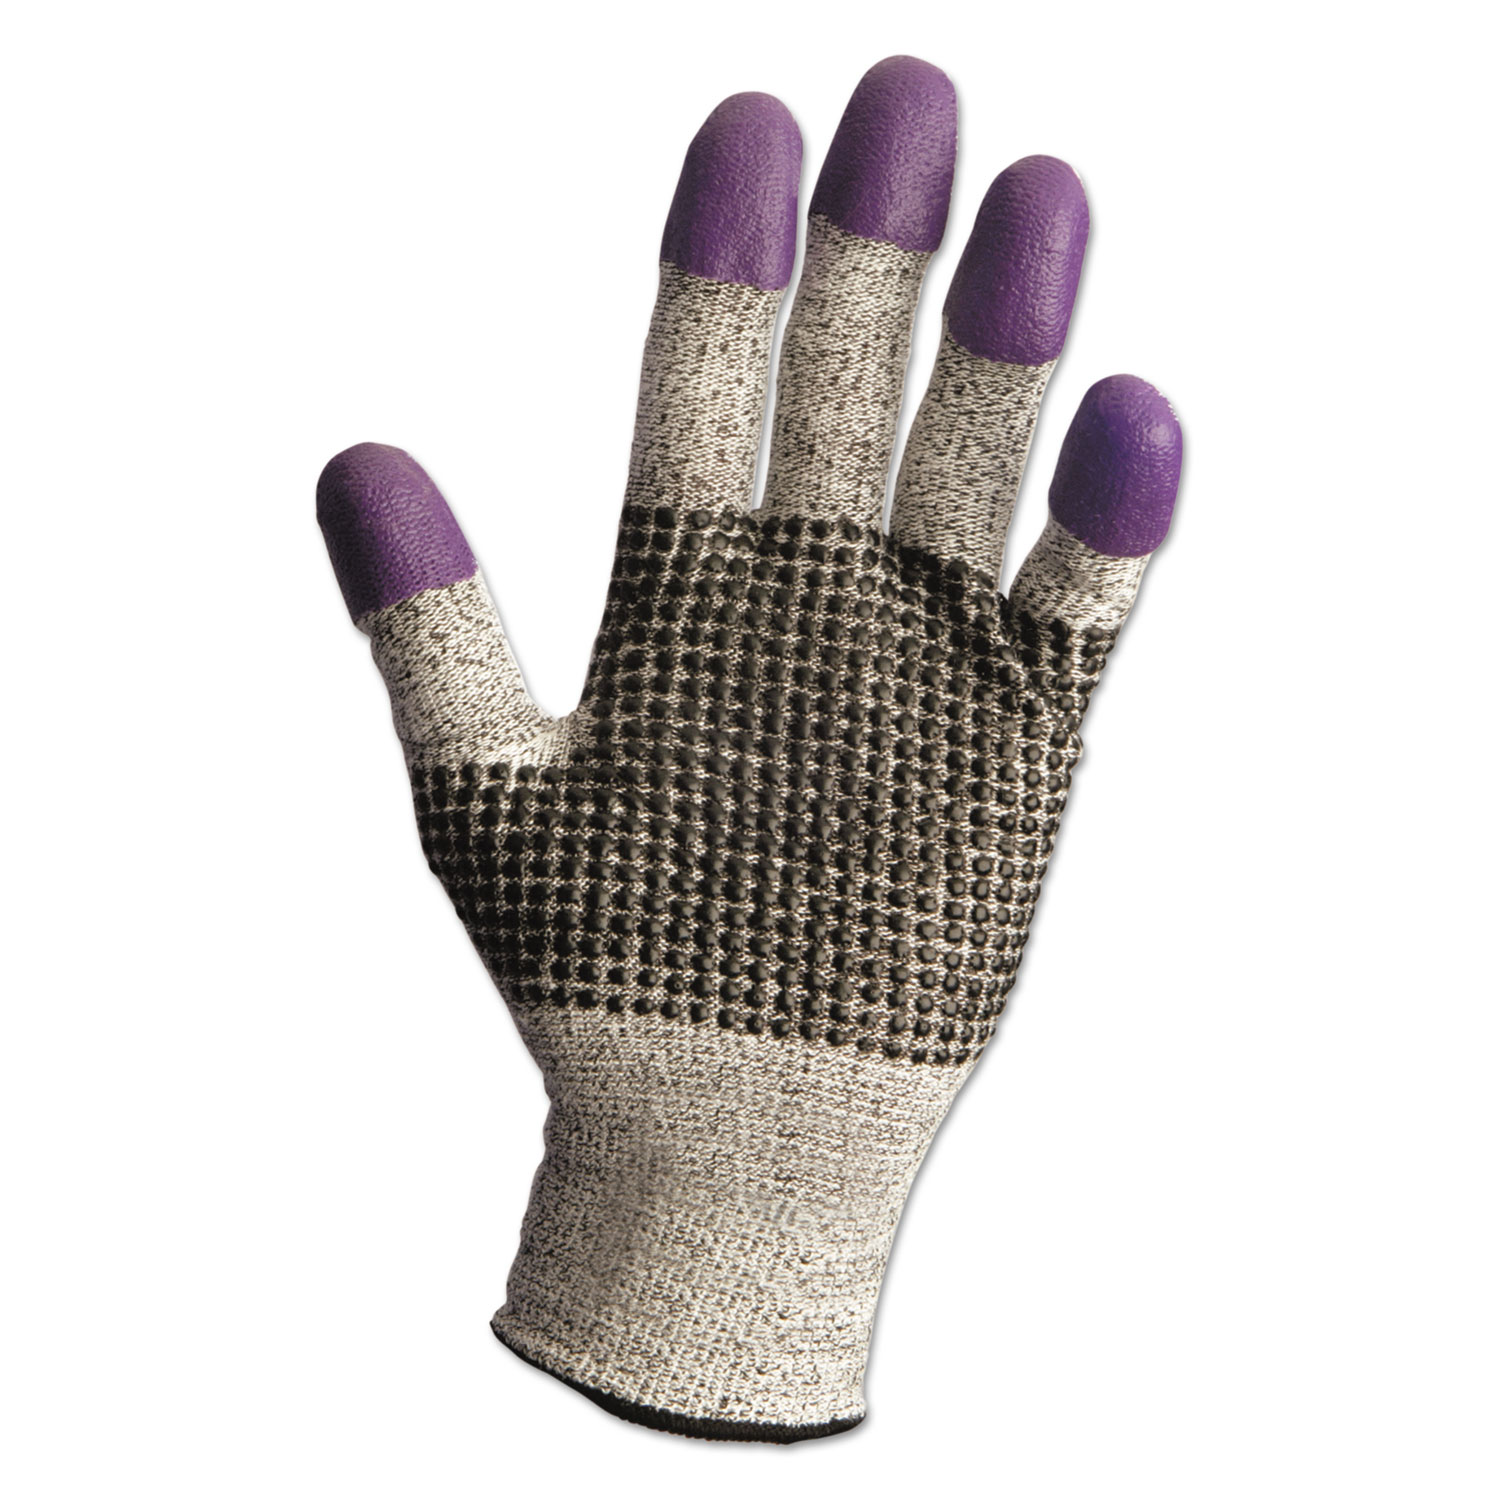 G60 Purple Nitrile Gloves, 240mm Length, Large/Size 9, Black/White, 12 Pair/CT